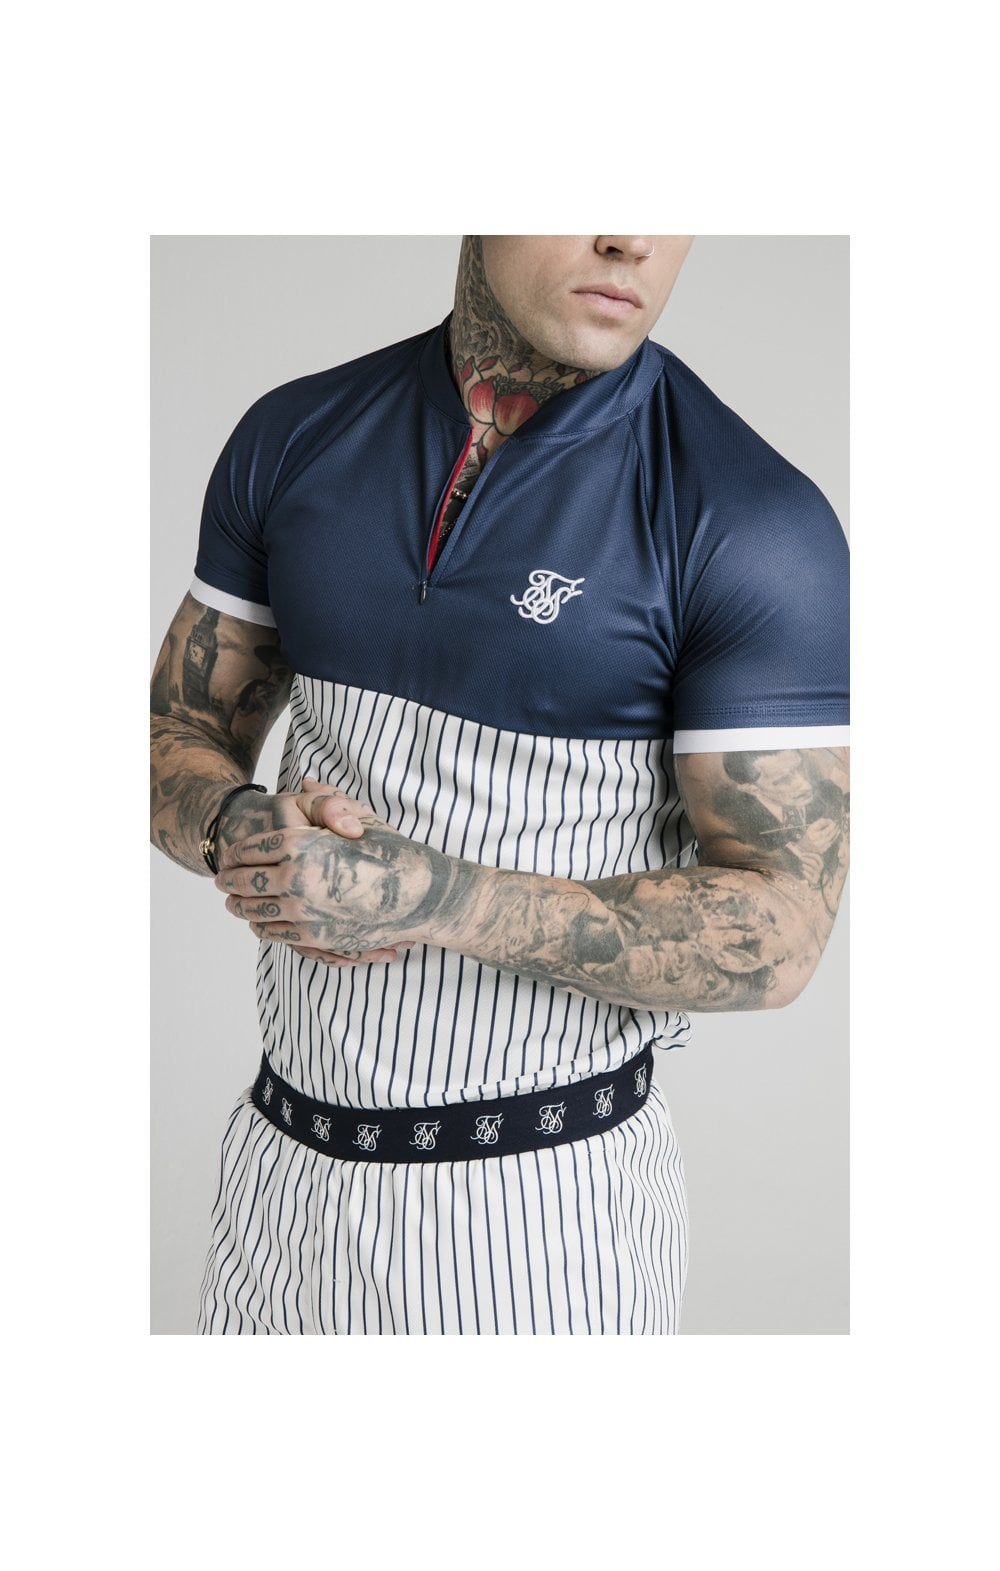 Load image into Gallery viewer, SikSilk S/S Pinstripe Baseball Tee - Navy & White